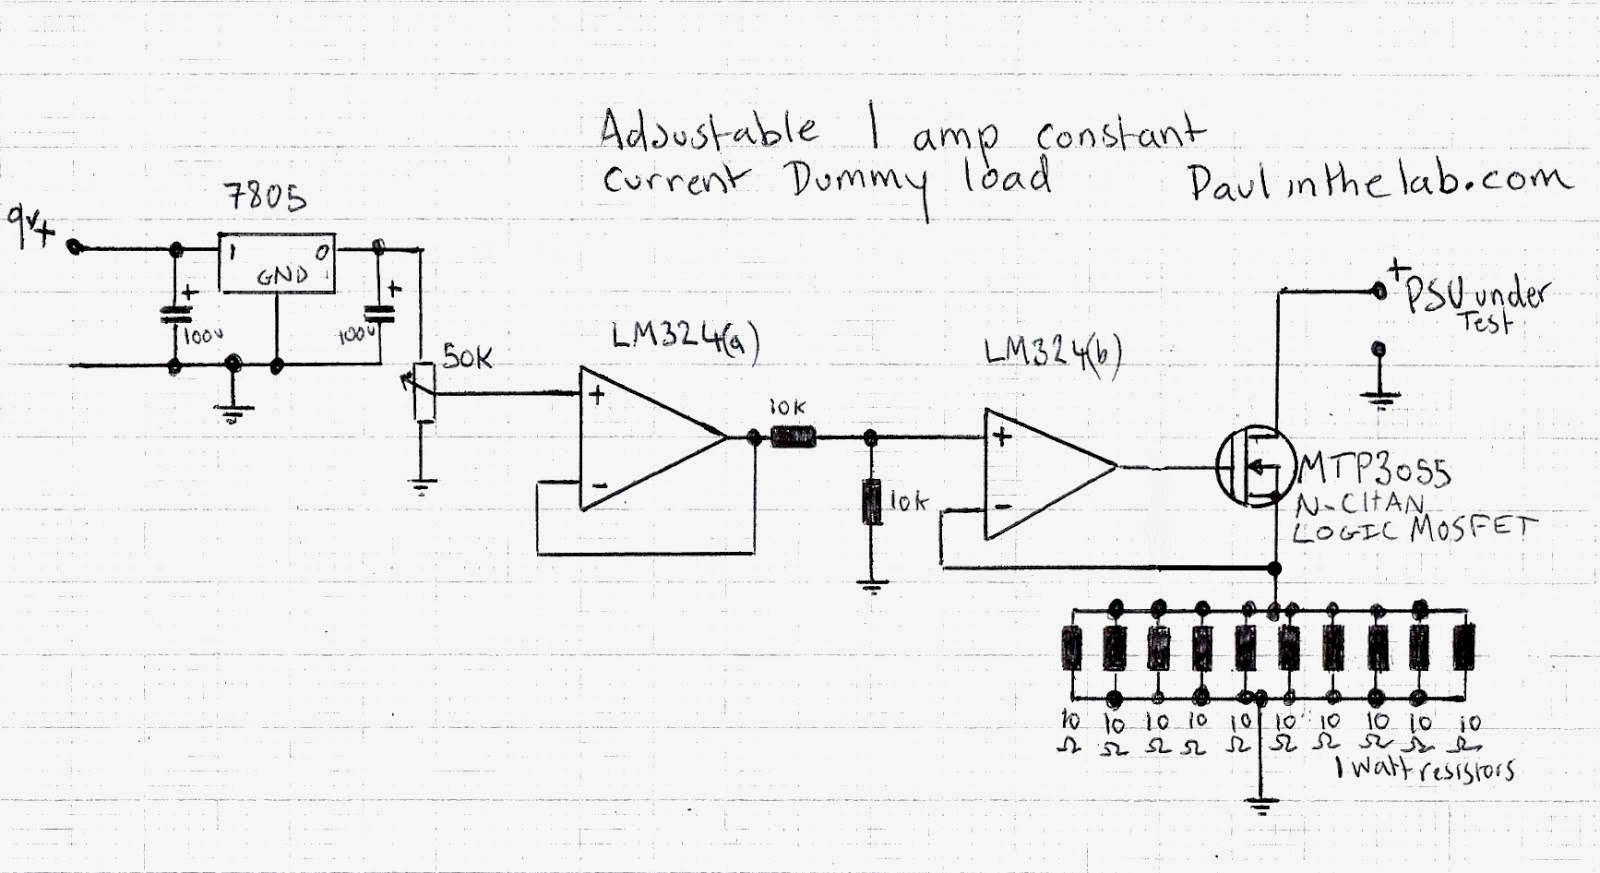 Circuit Load Circuitlab Mosfetled Constant Current Too Sensitive Page 1600x873